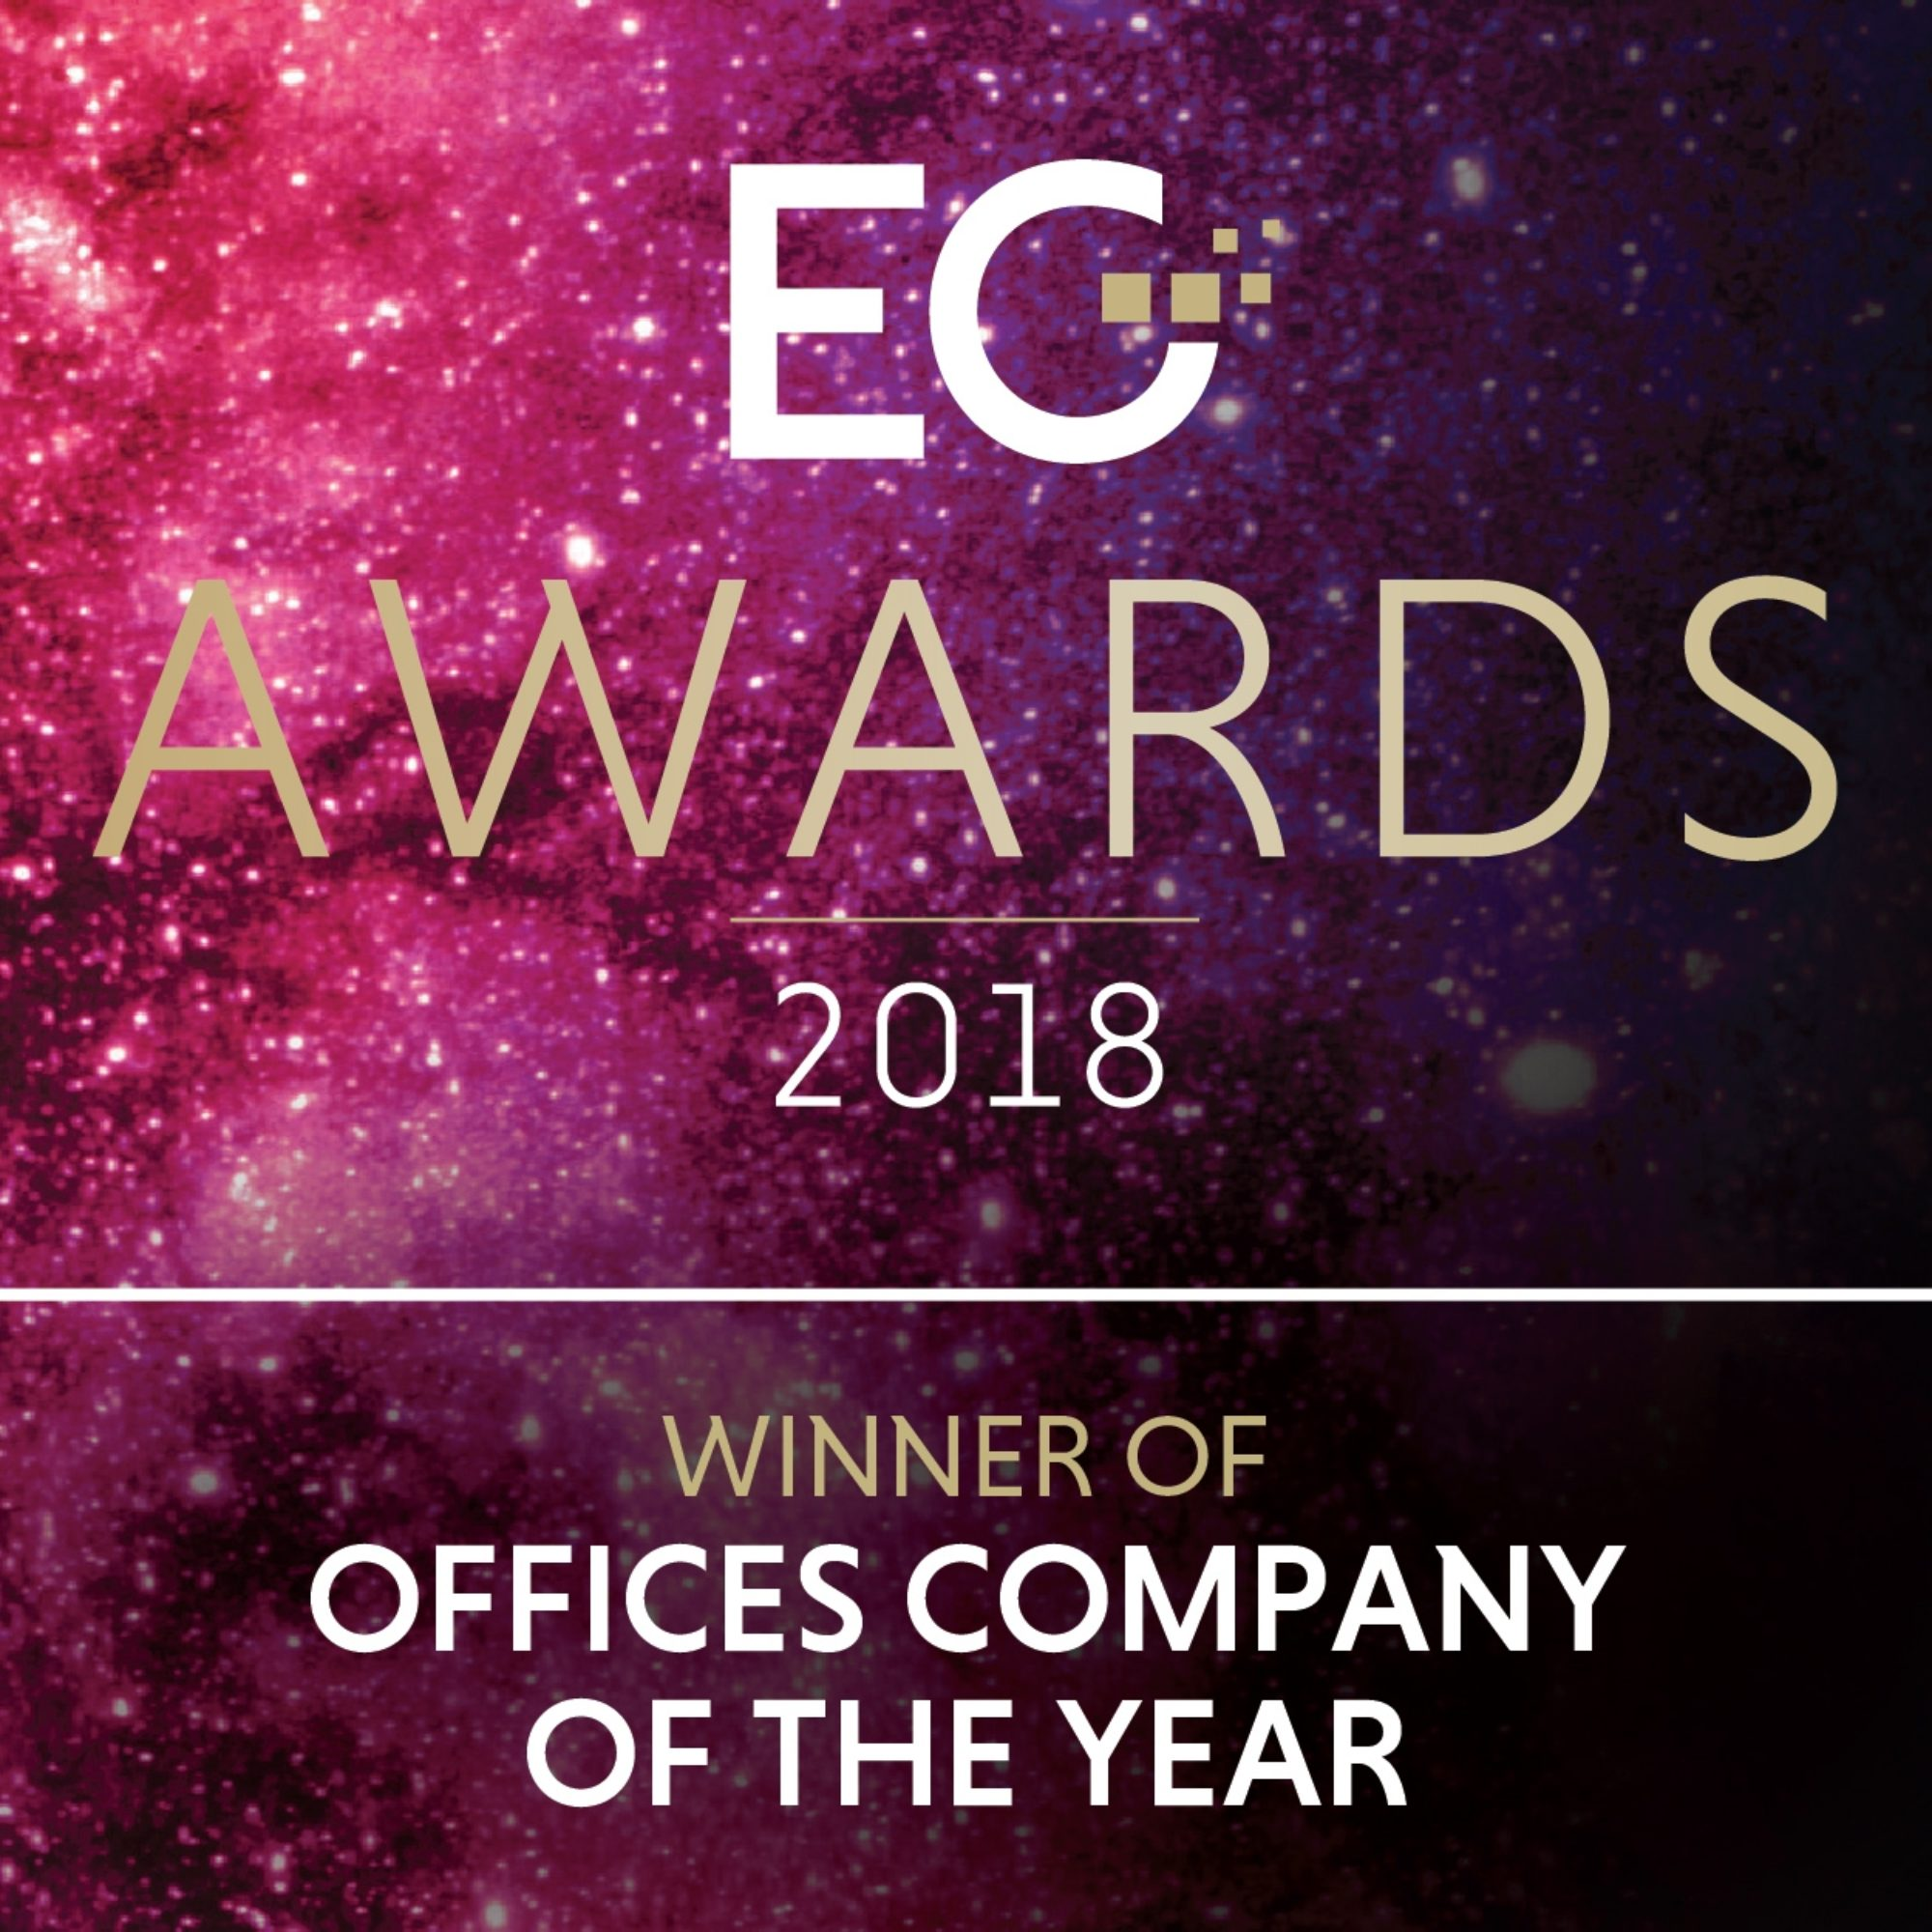 Derwent London wins the EG Offices Company of the Year award